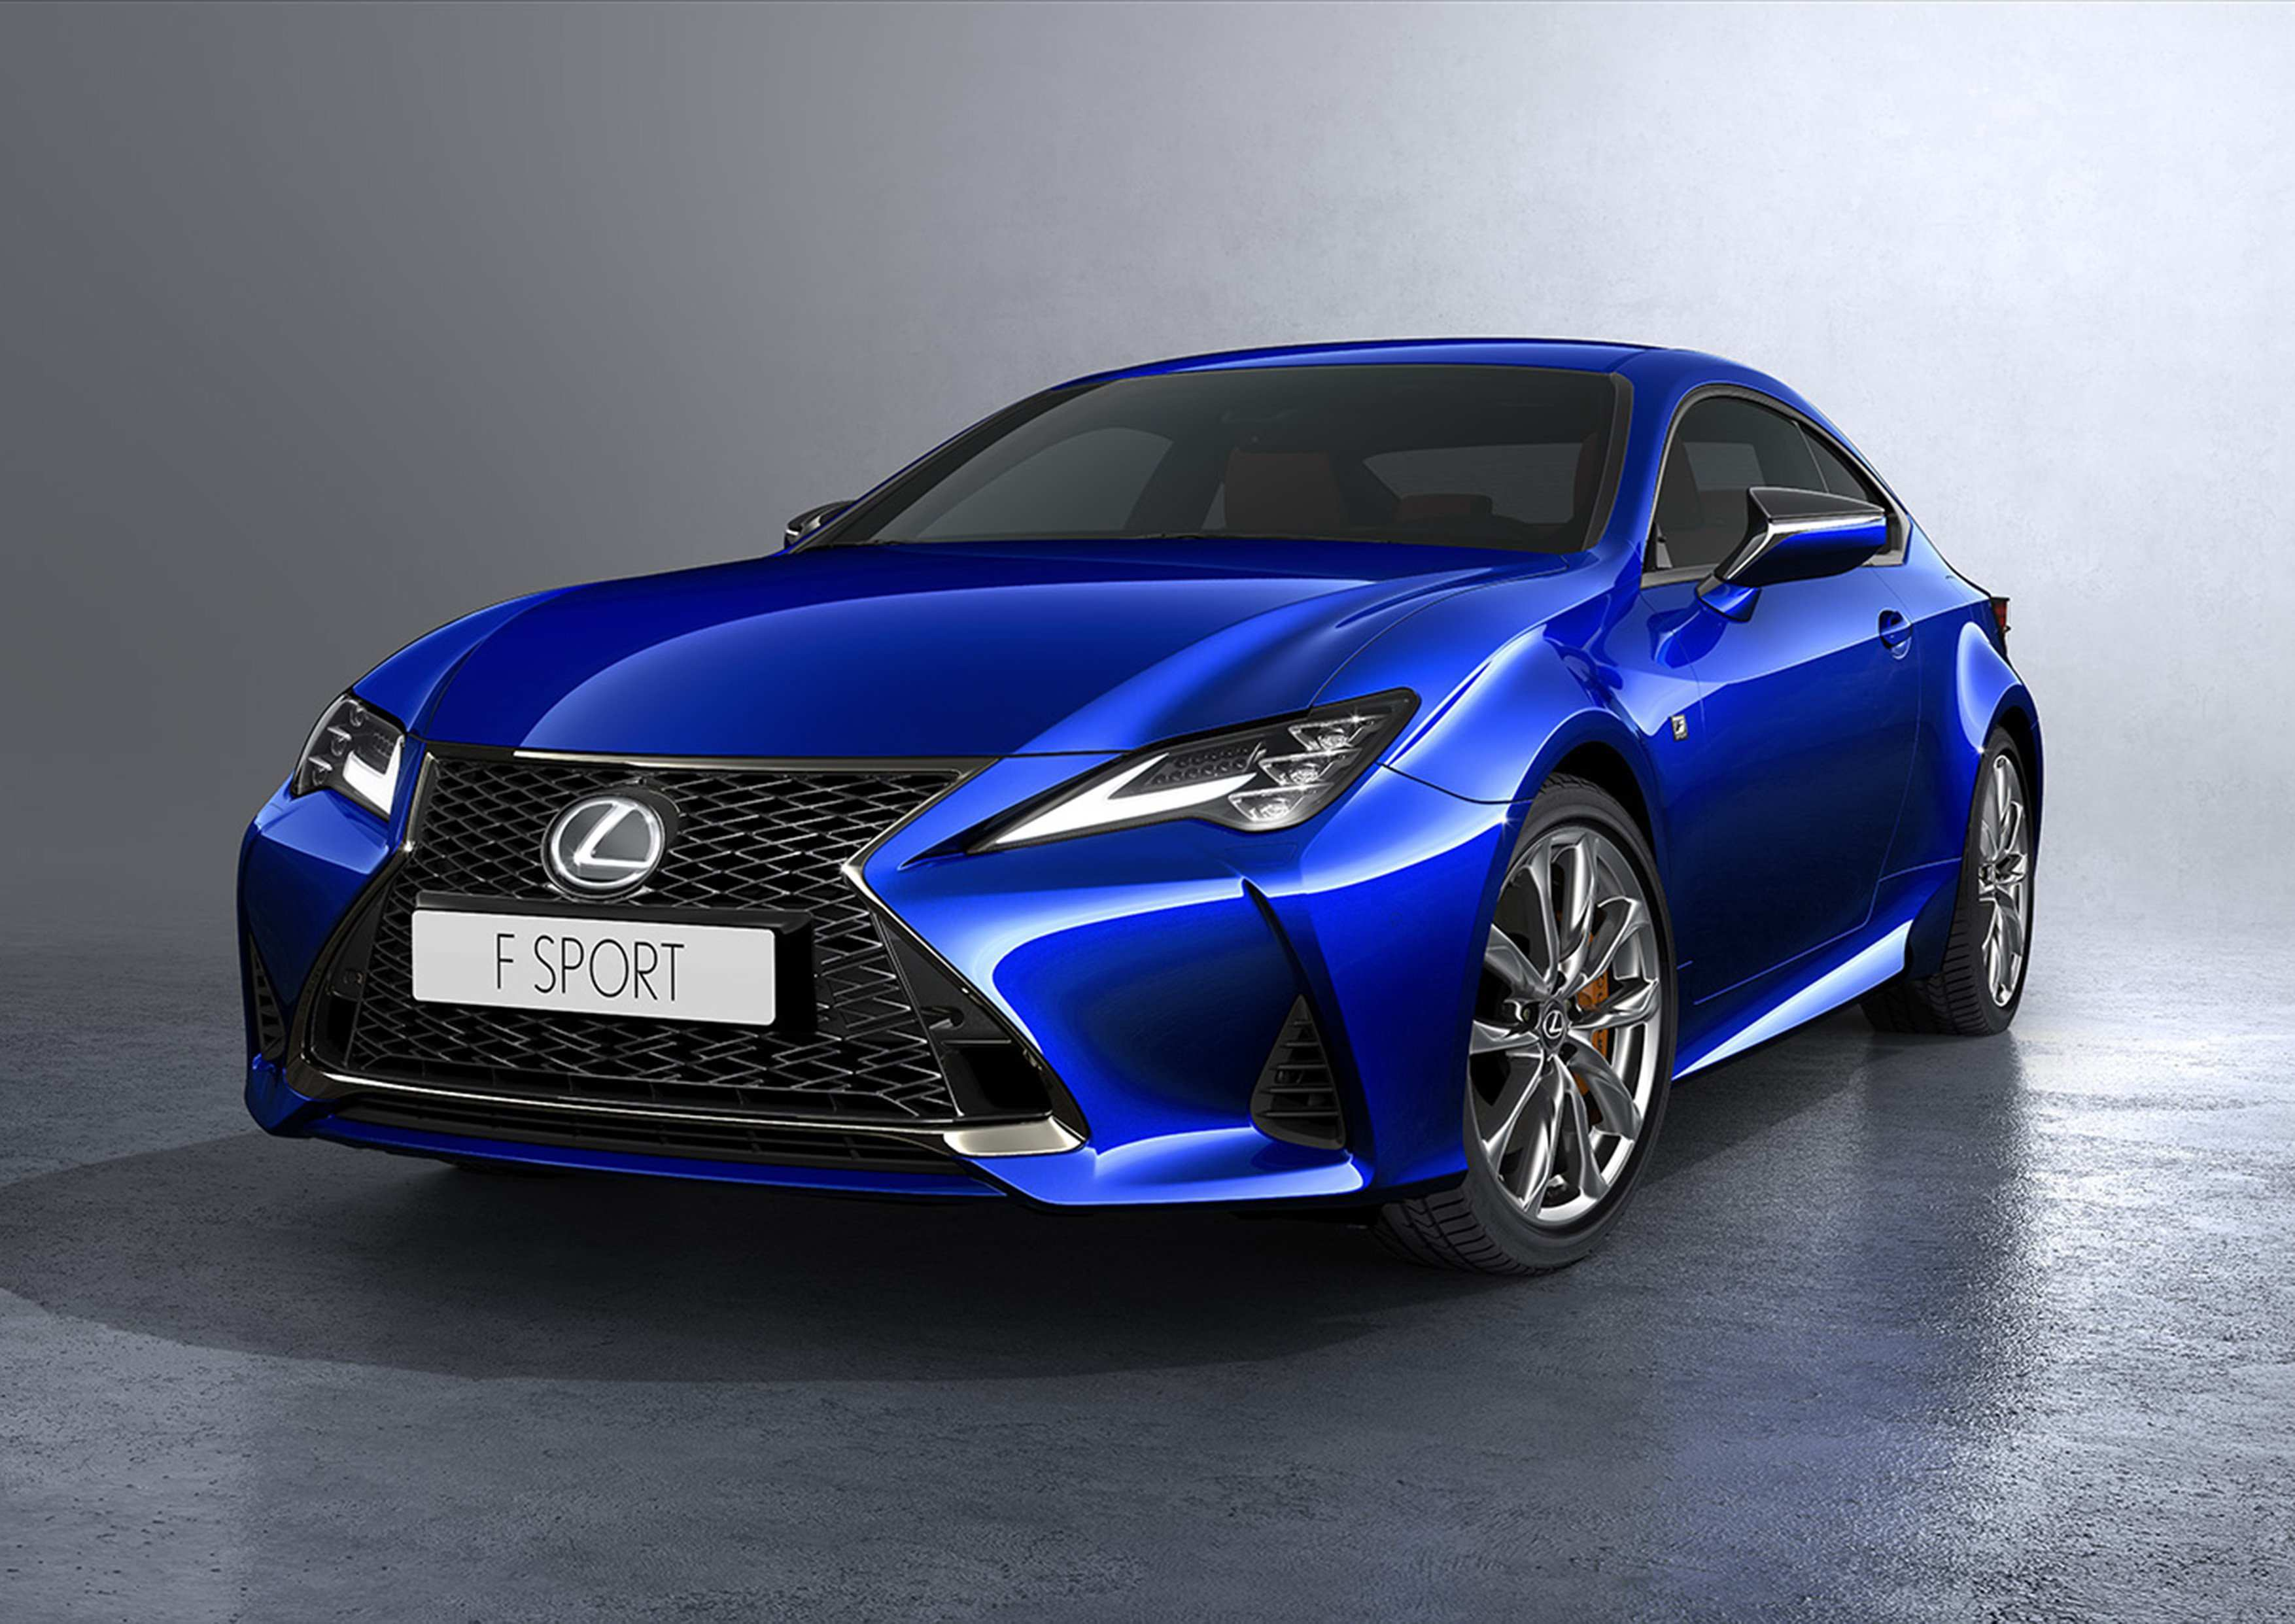 36 New Lexus F Sport 2020 Spesification by Lexus F Sport 2020